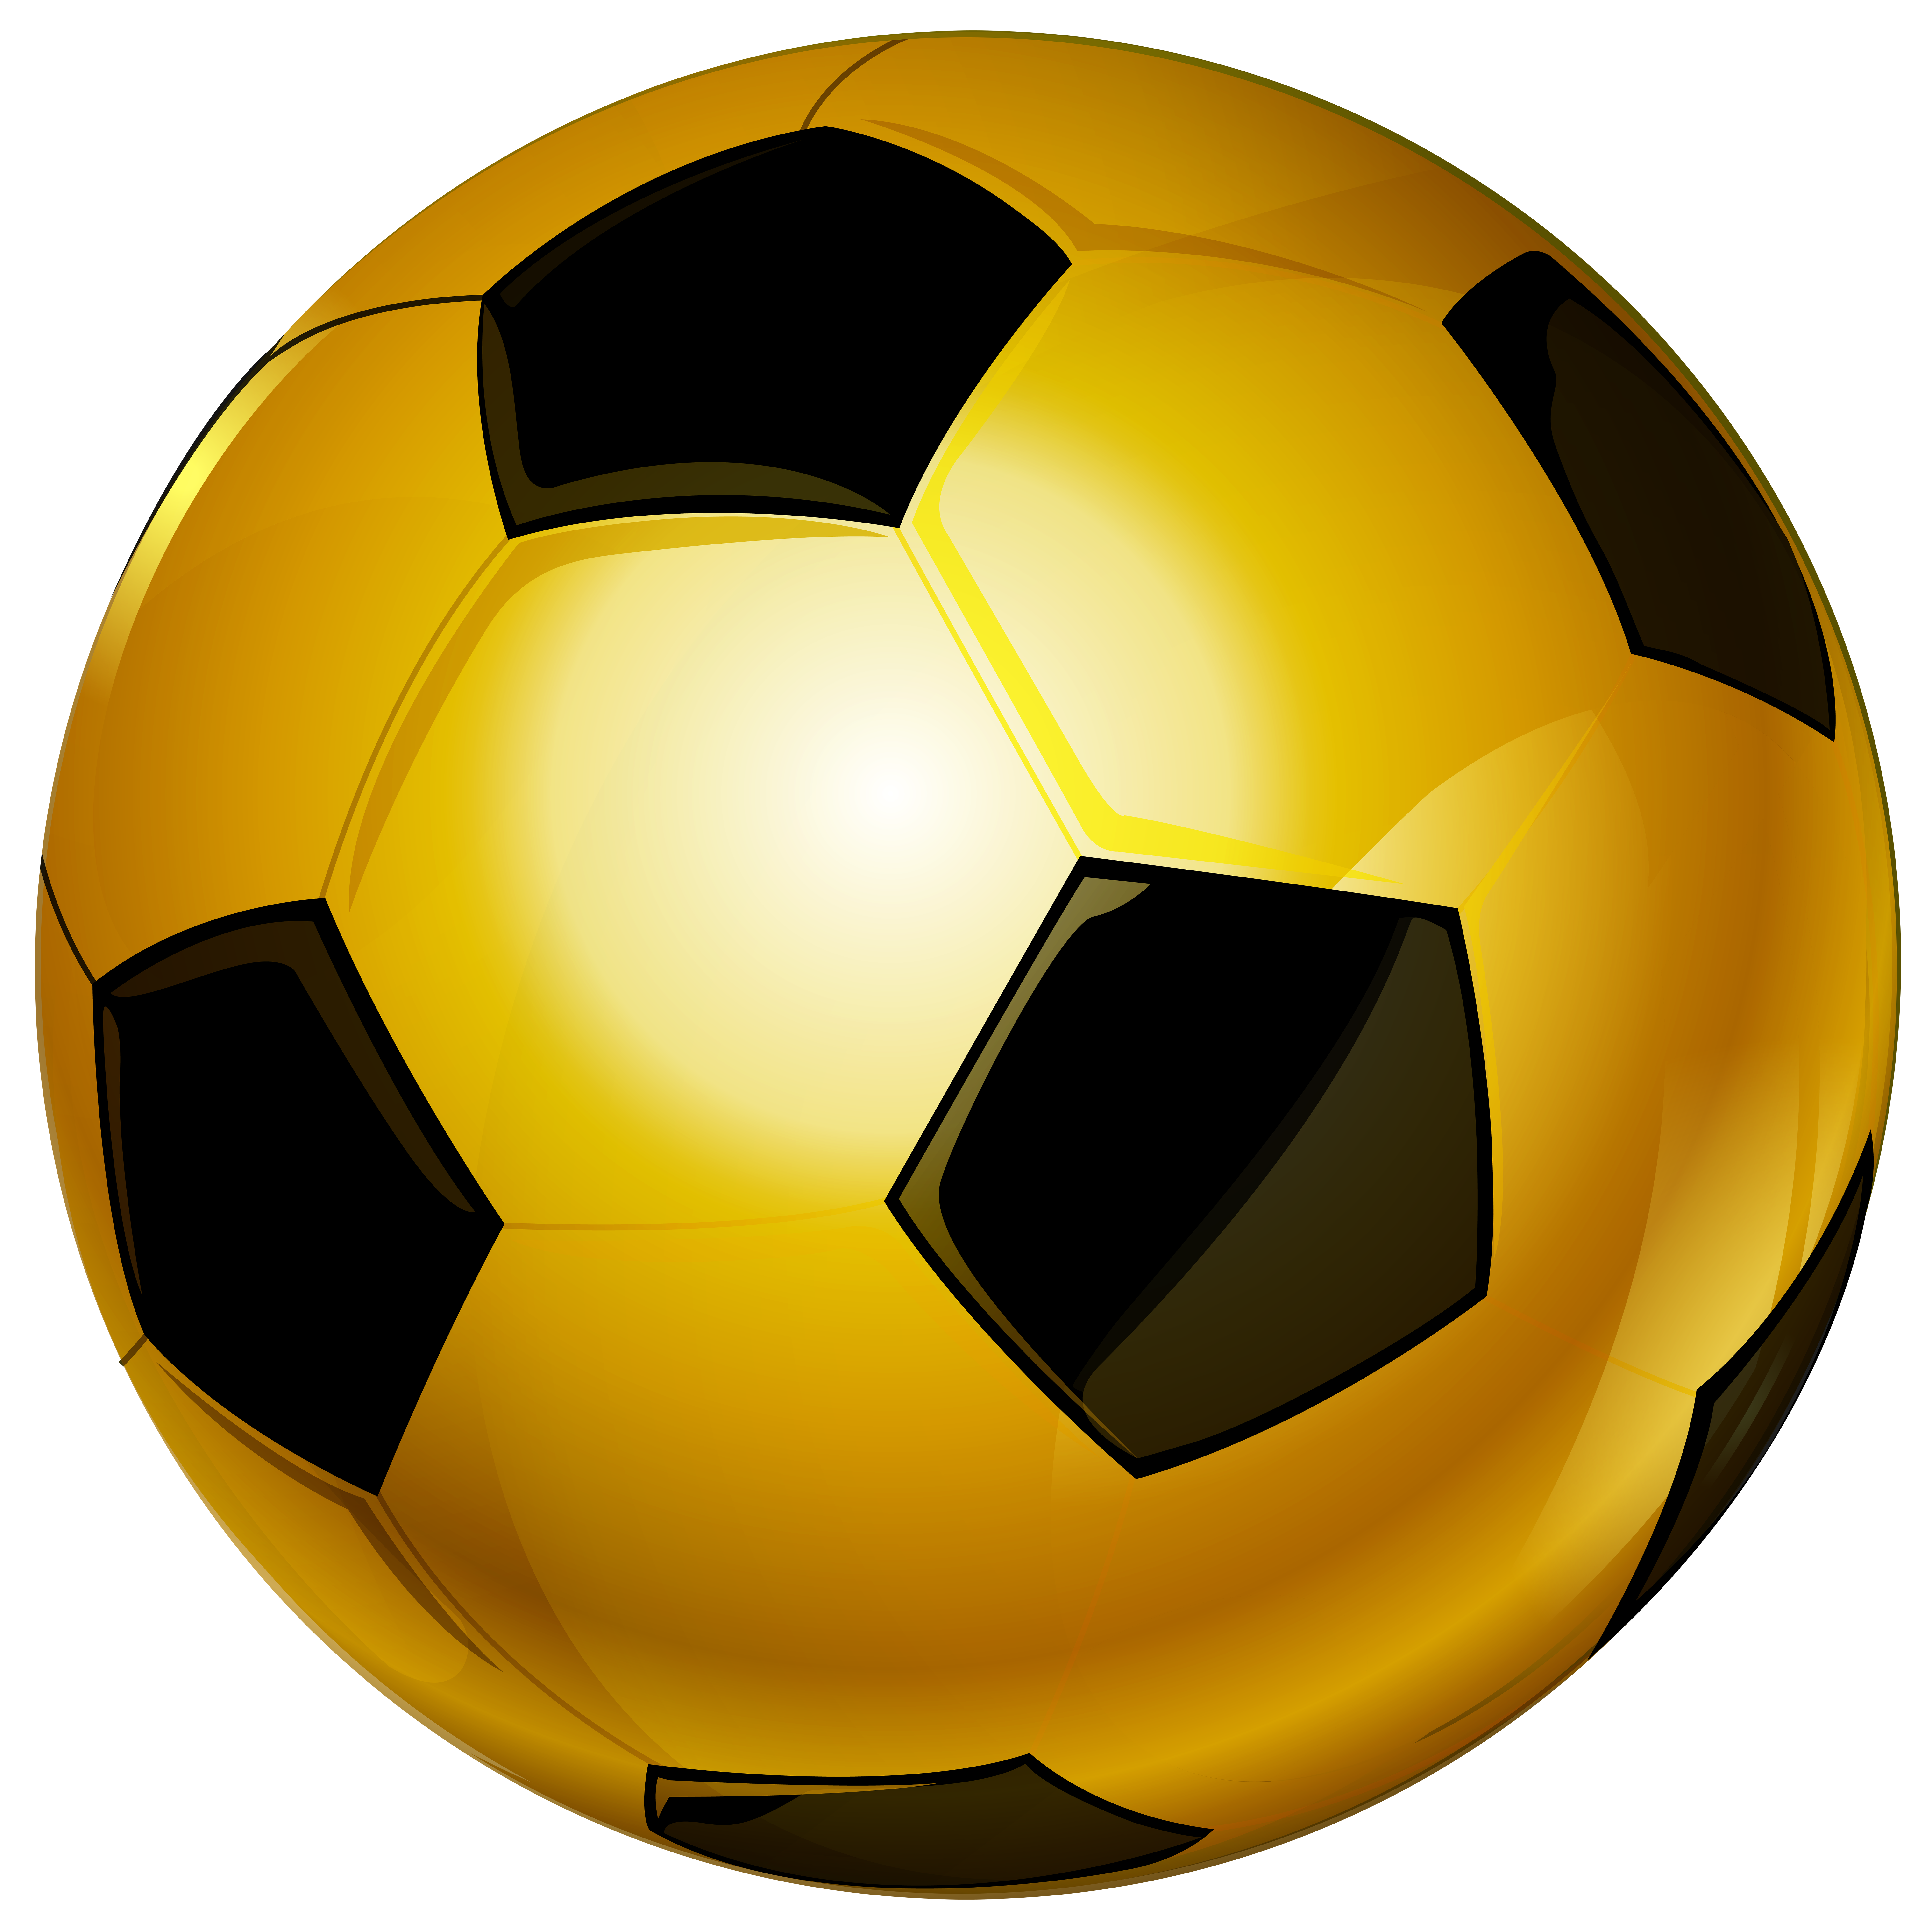 Hearts clipart soccer. Gold ball png clip